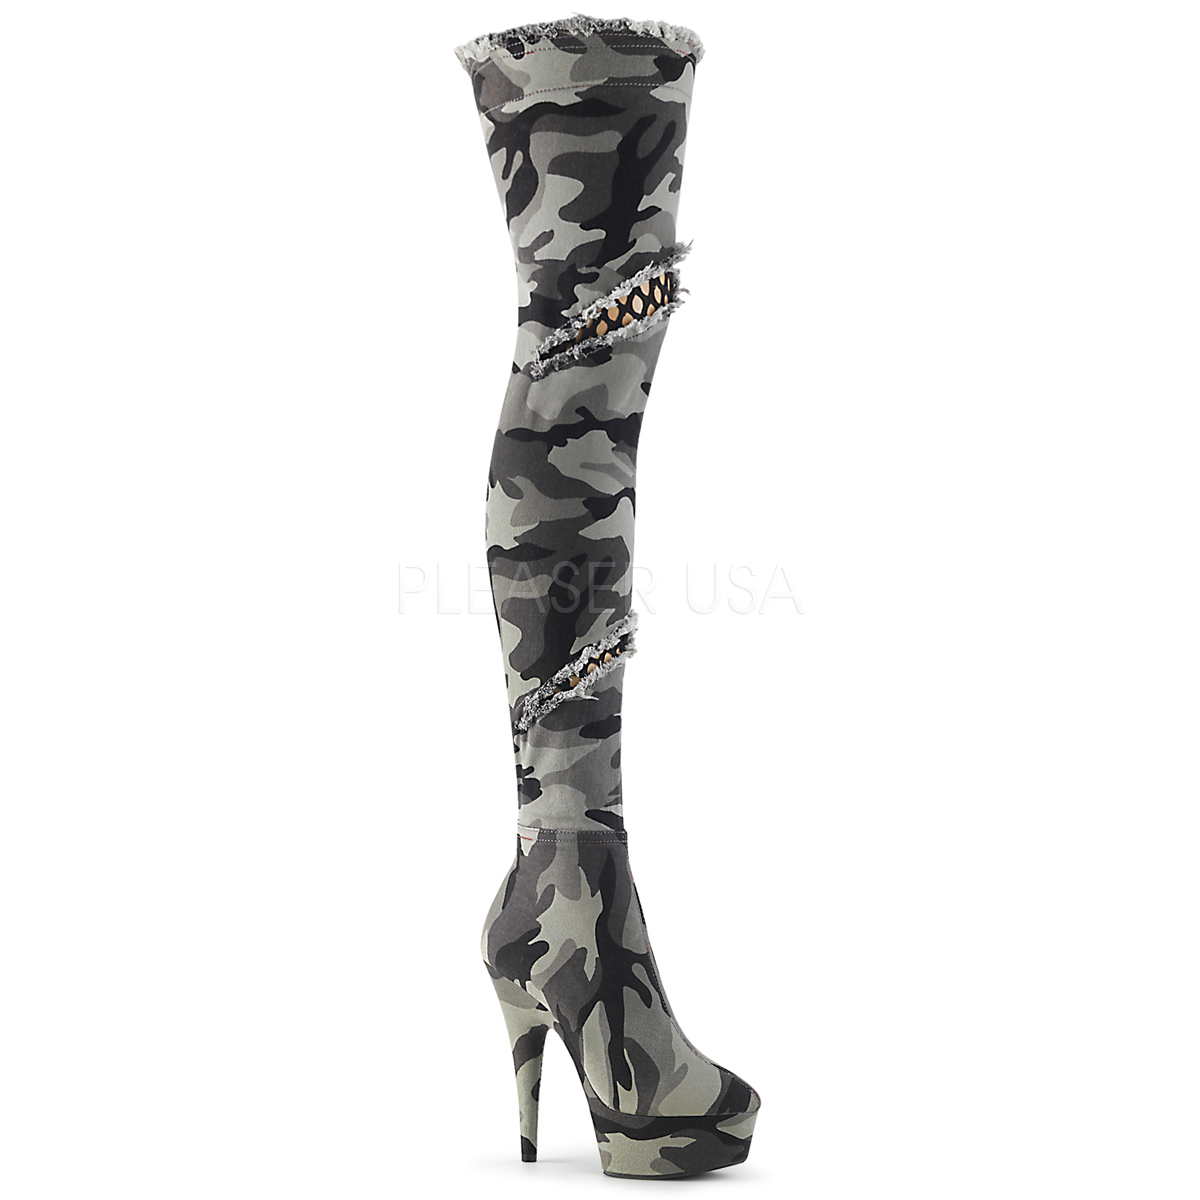 6ed0b0085cf Camoflash-Canvas-15-cm-DELIGHT-3005-Platform-Thigh-High-Boots-11594 0.jpg